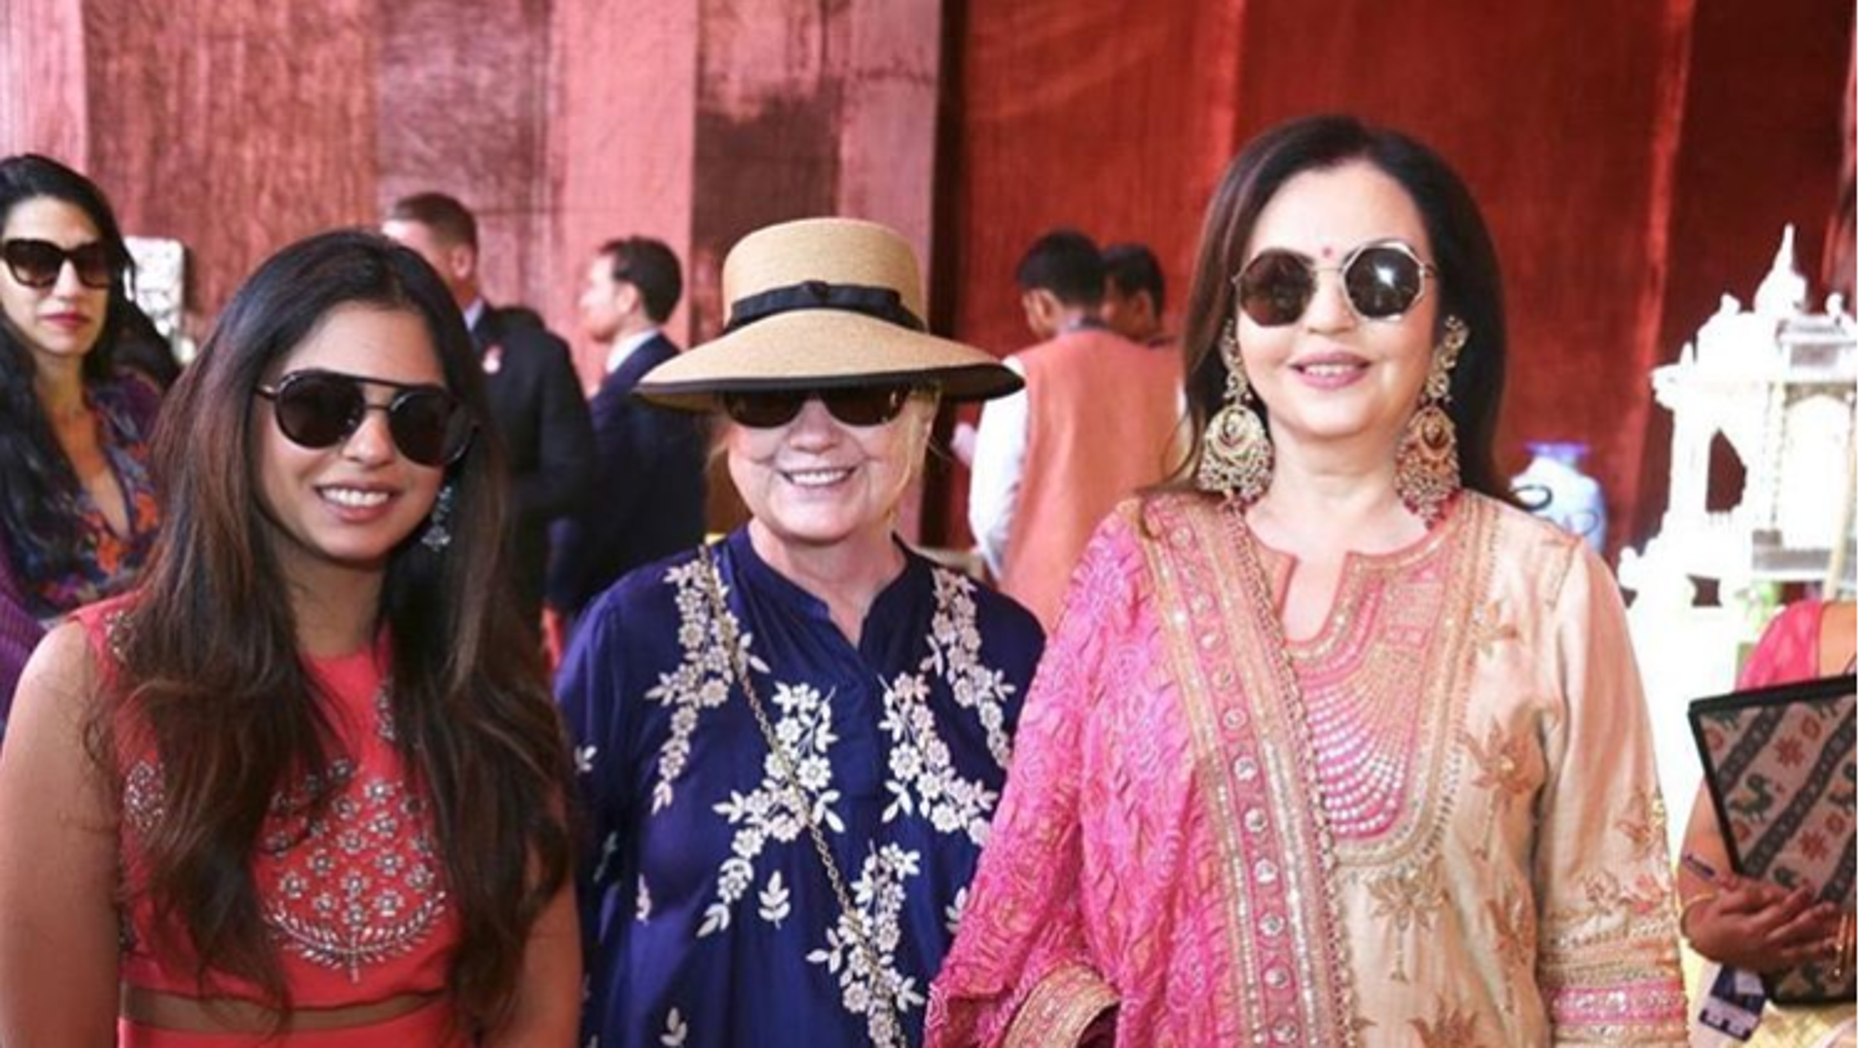 Hillary Clinton posing with bride Isha Ambani and mother-of-the-bride Nita Ambani. Huma Abedine is seen in the background.